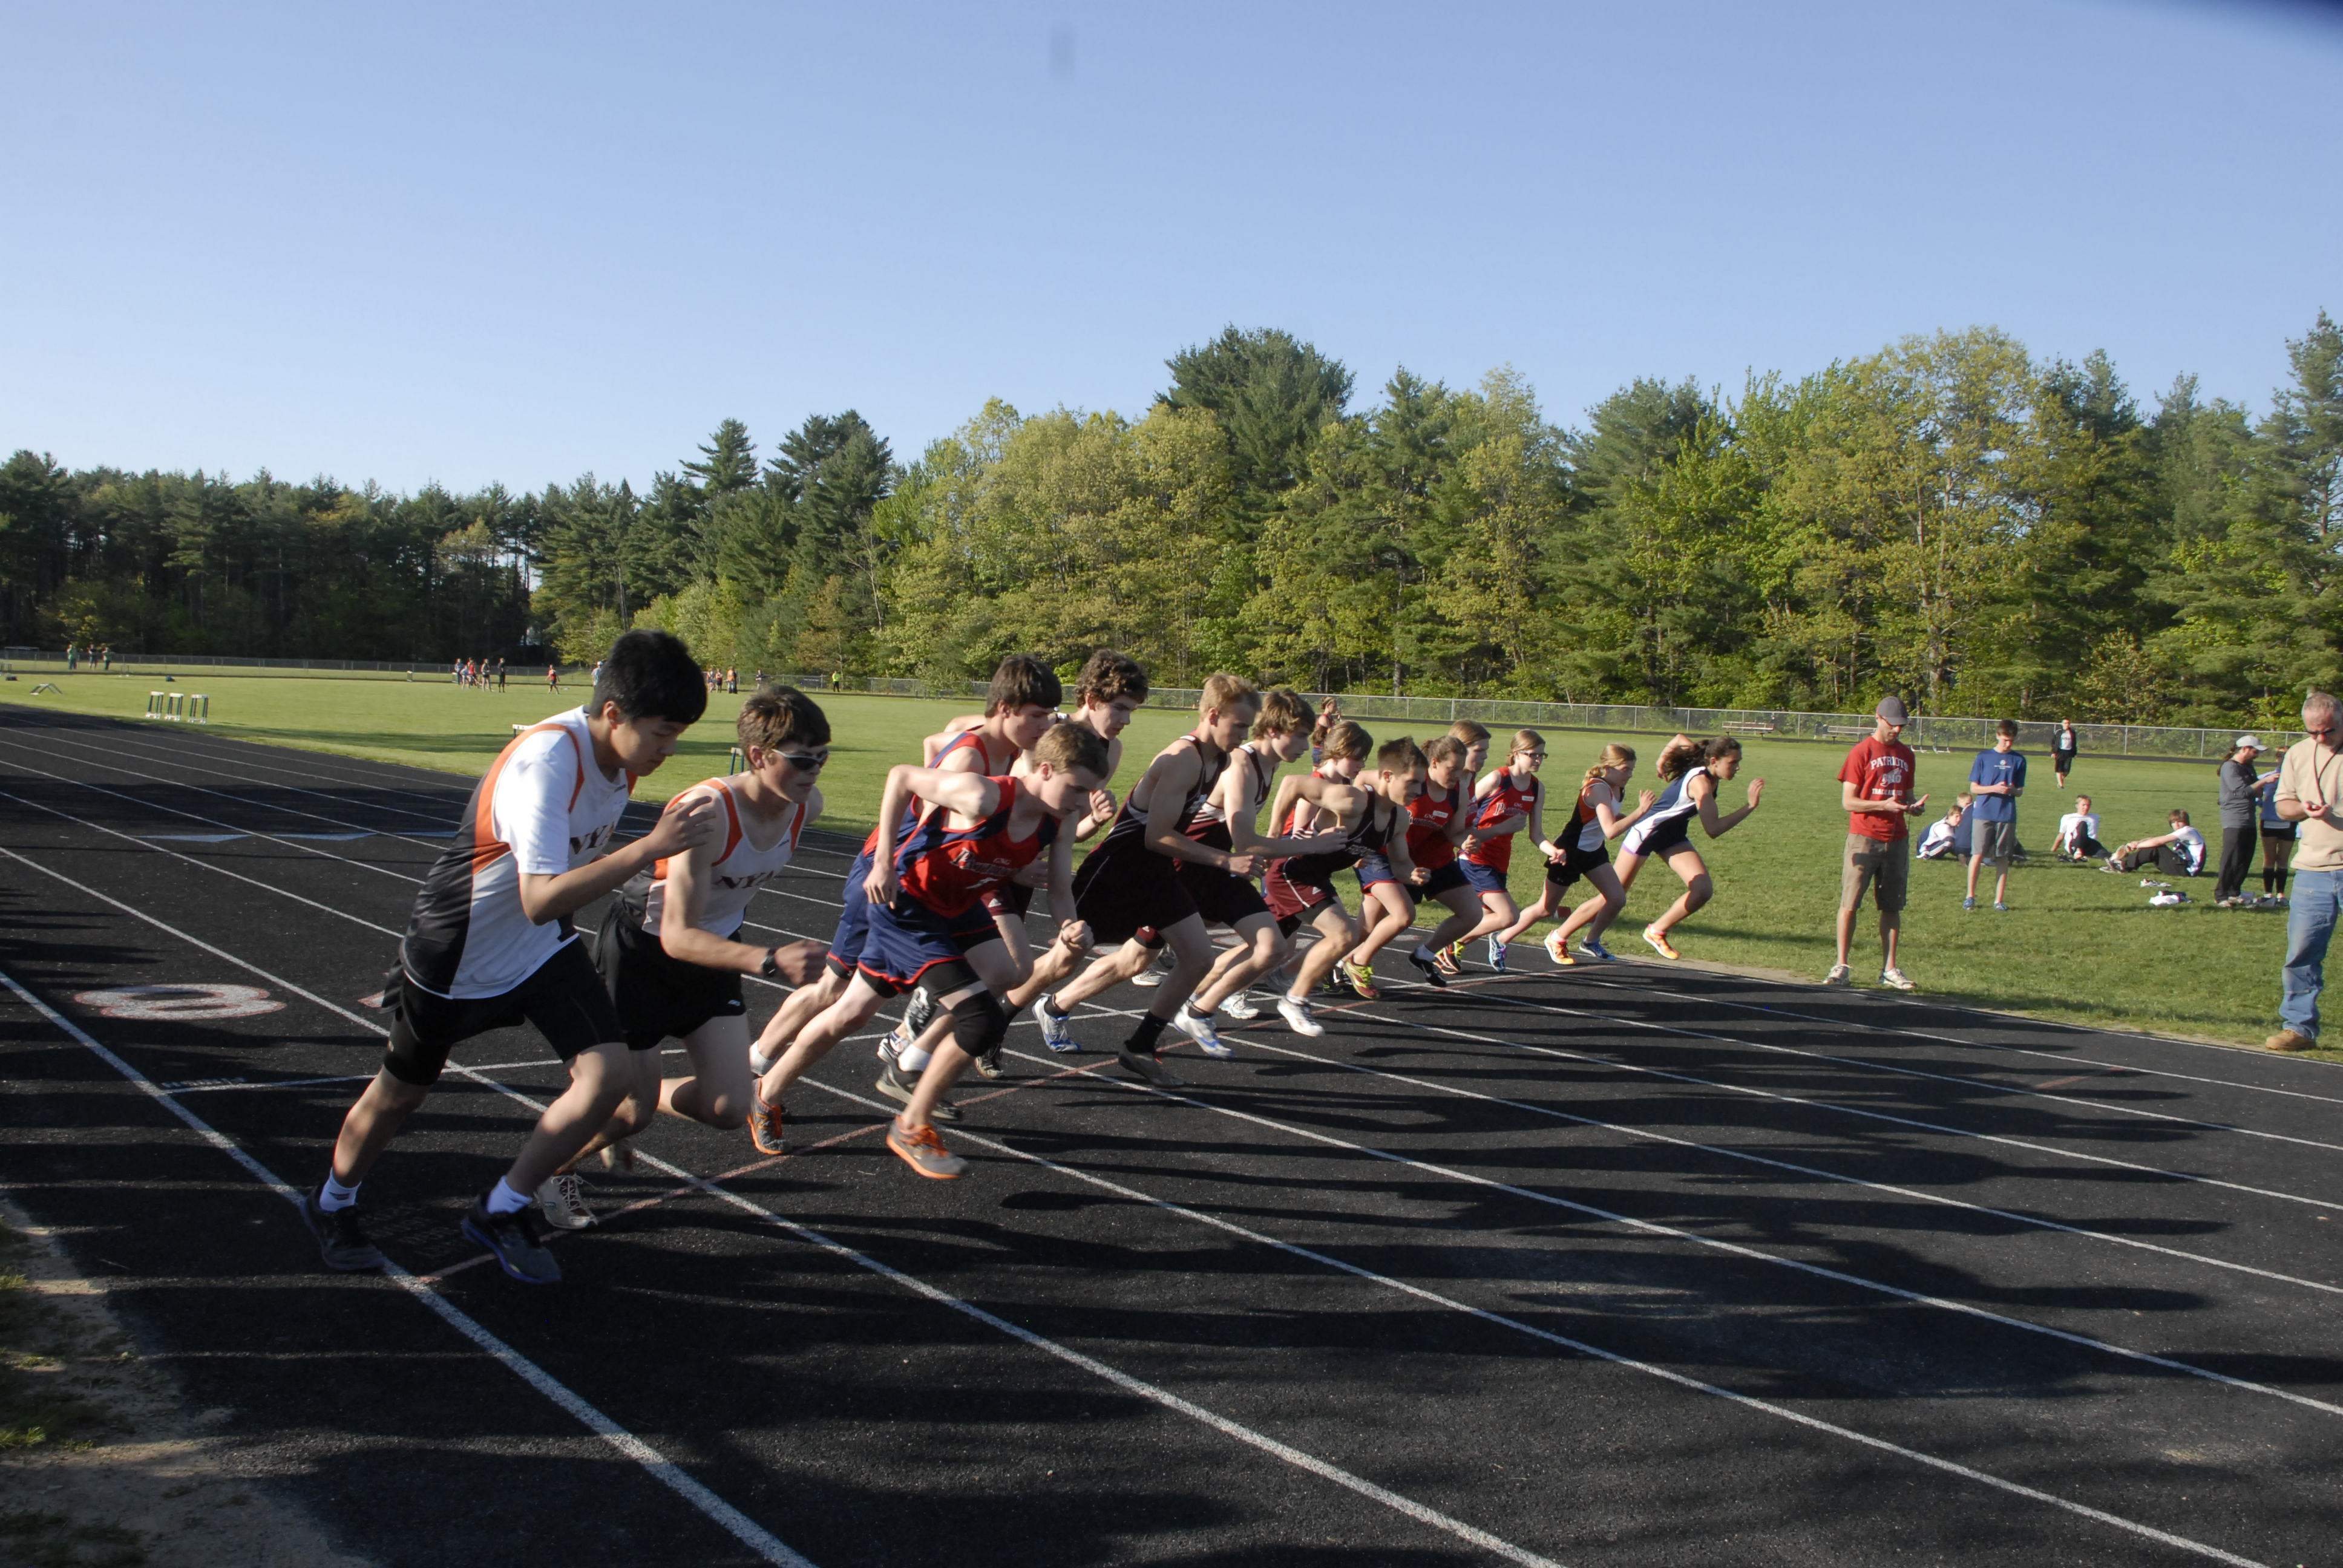 The start of the 3200 meter, photo courtesy of David Colby Young